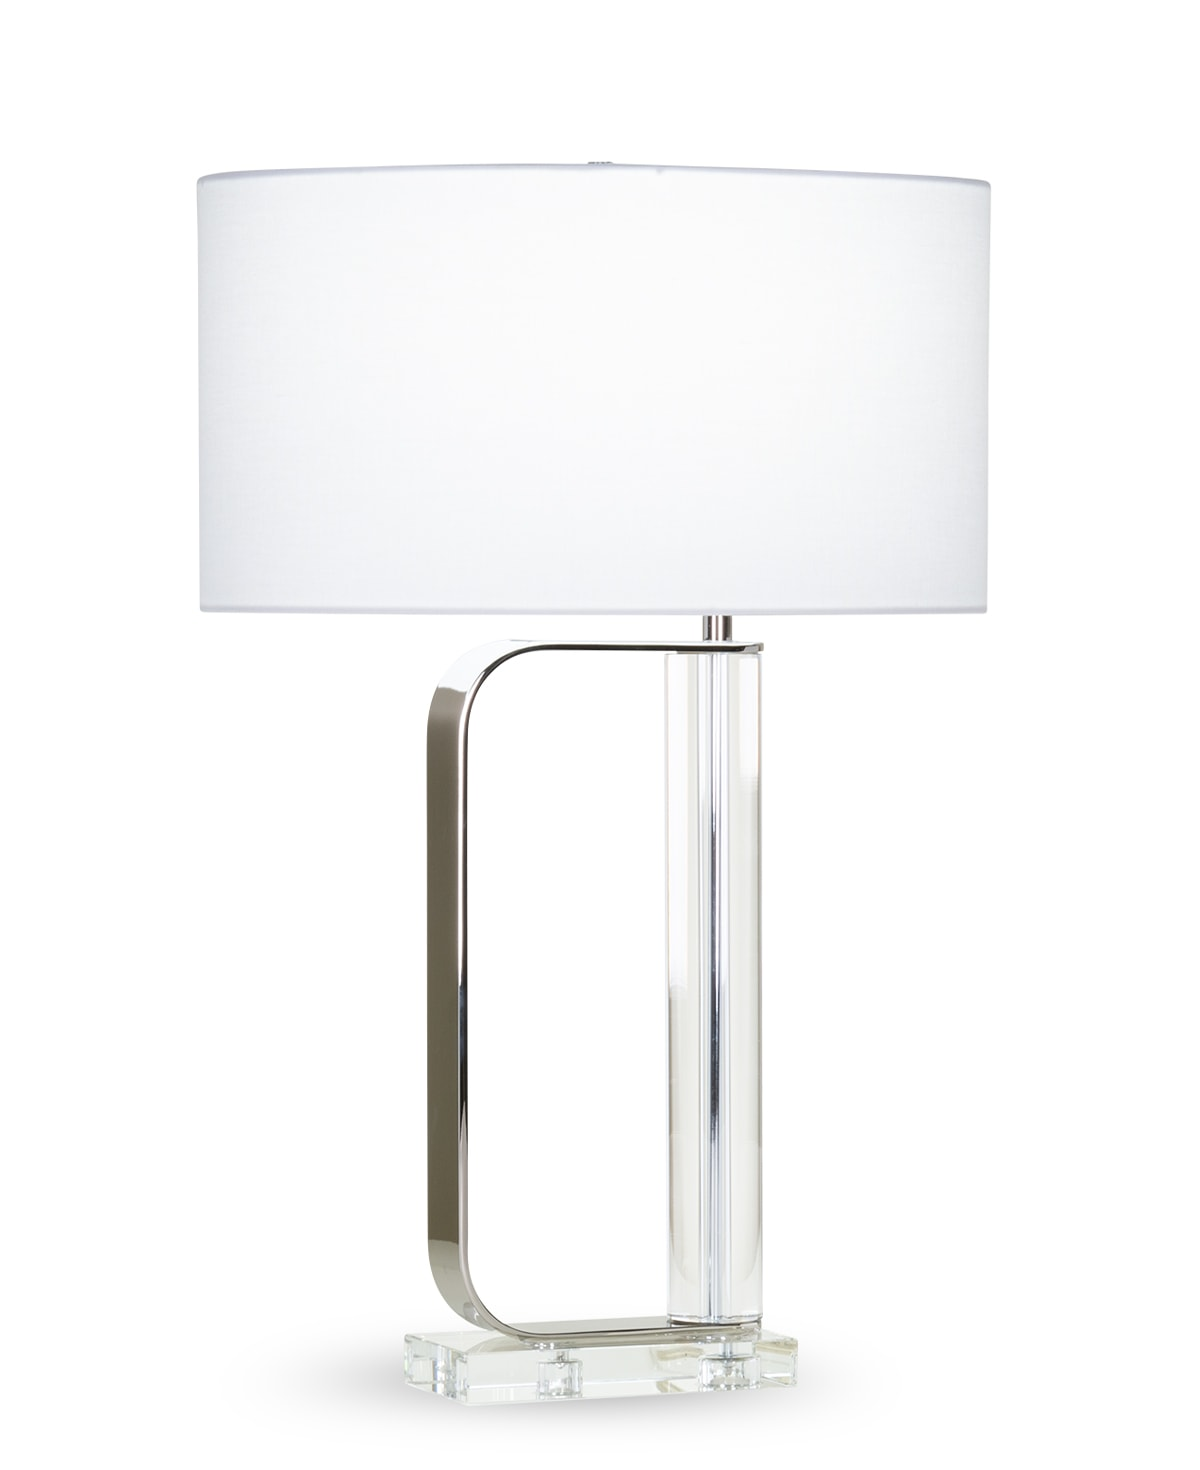 FlowDecor Ronald Table Lamp in crystal and metal with polished nickel finish and white linen oval shade (# 4413)